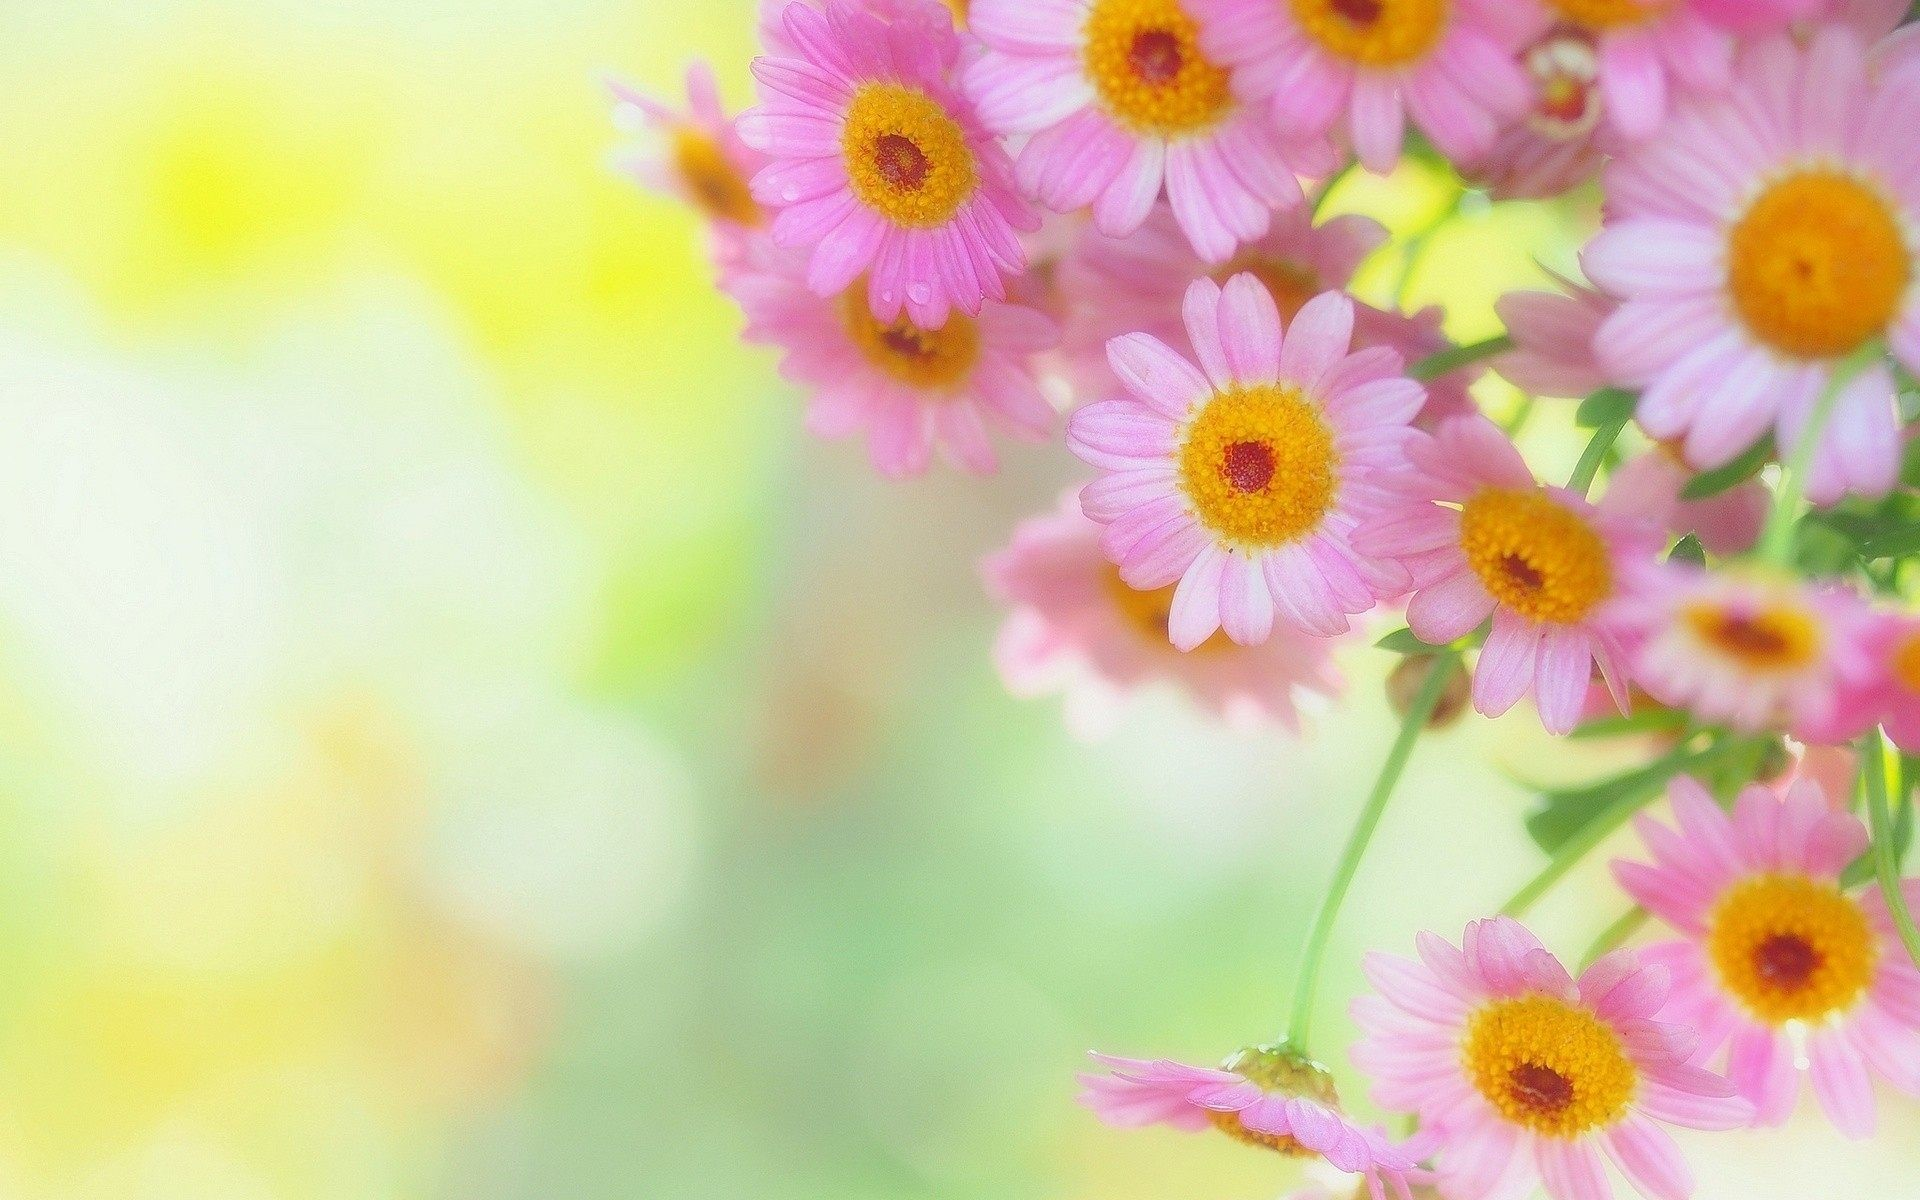 Res: 1920x1200, Free Flower Background Wallpaper High Quality Widescreen Fresh Flowers For  Desktop And Mobile Of Computer